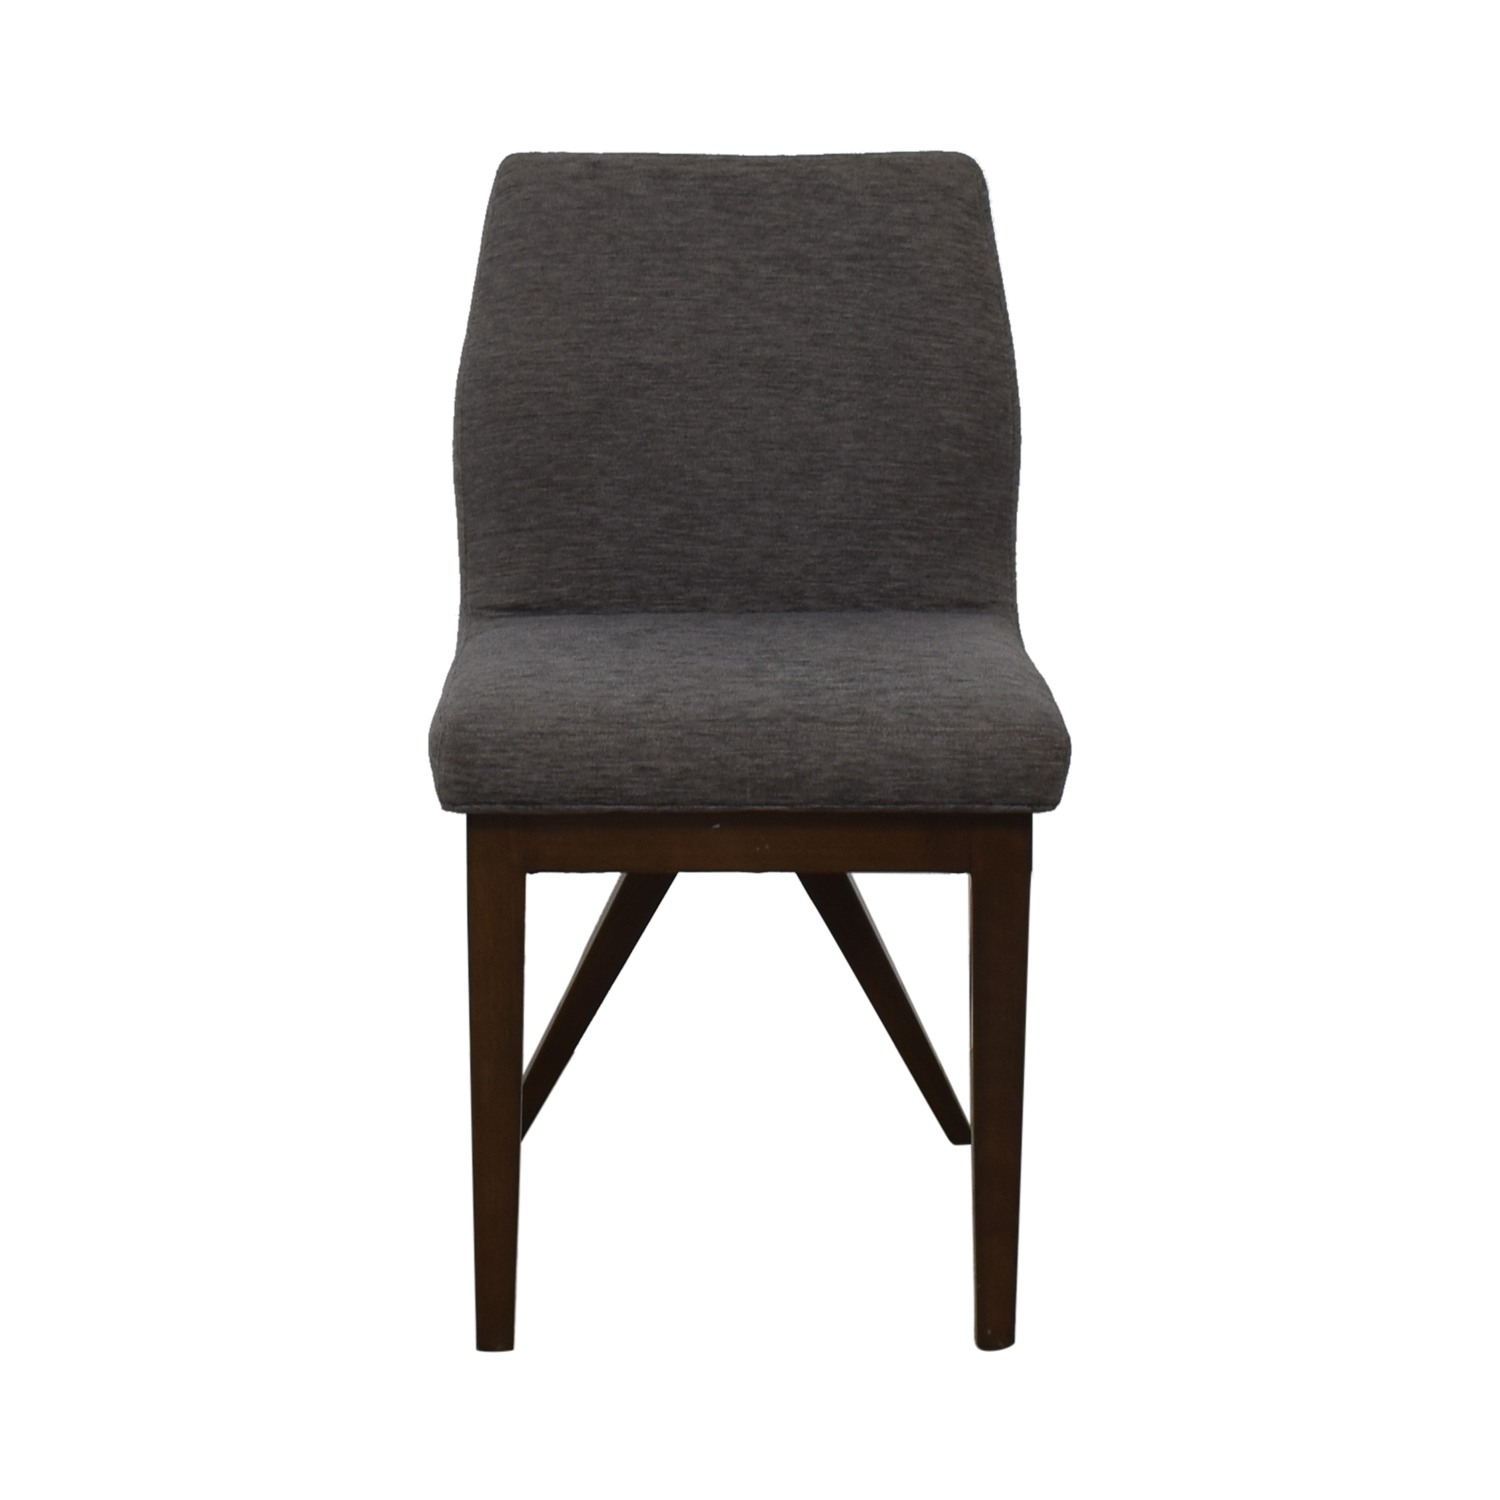 shop Furniture Masters Furniture Masters Mid Century Gray Chair online